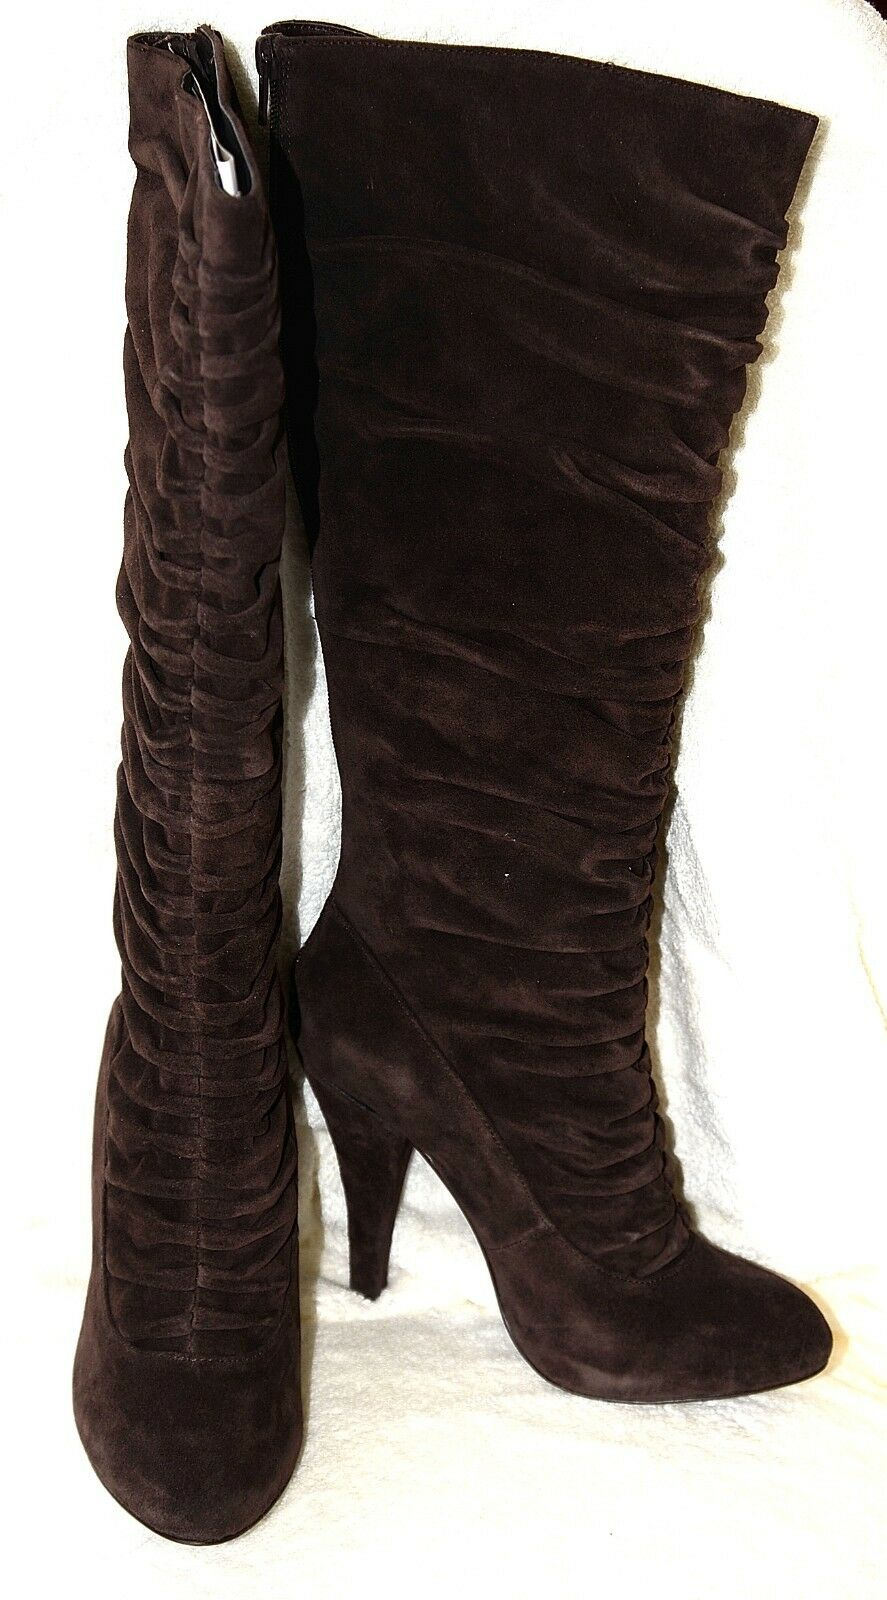 New Kelsi Dagger IONA Stiefel Chocolate braun Suede leather  225 8.5